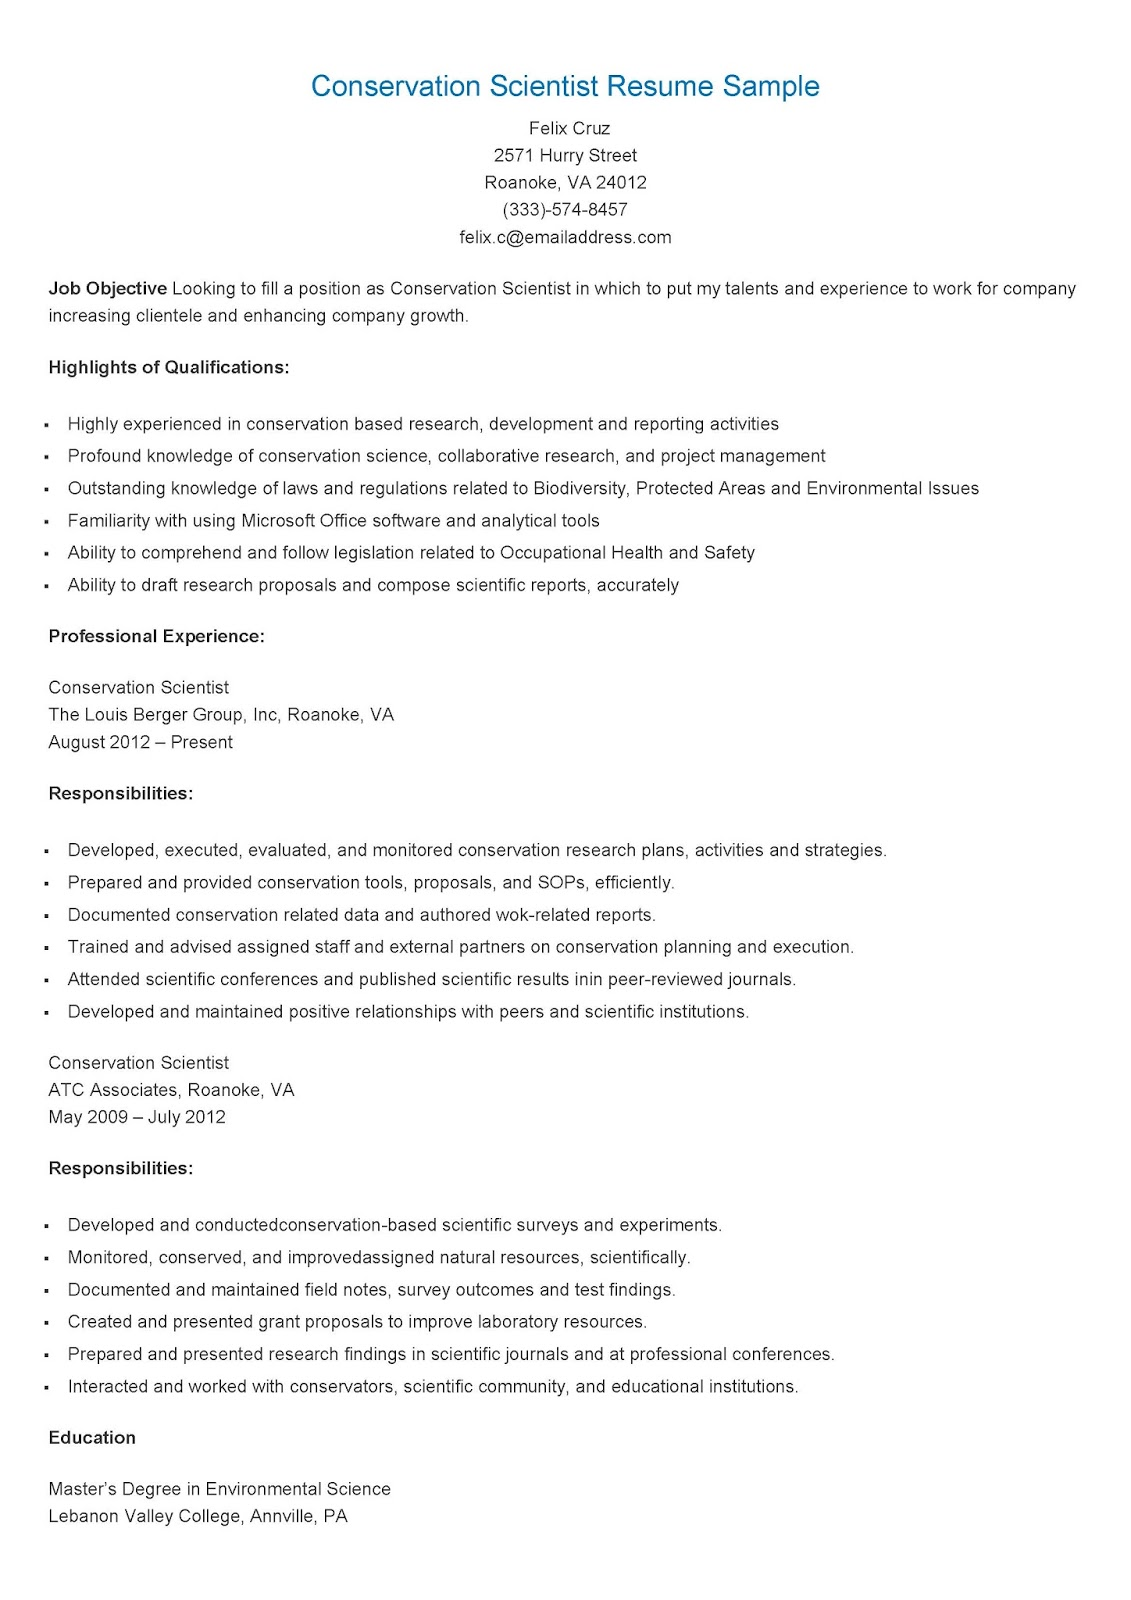 Resume Samples Conservation Scientist Resume Sample